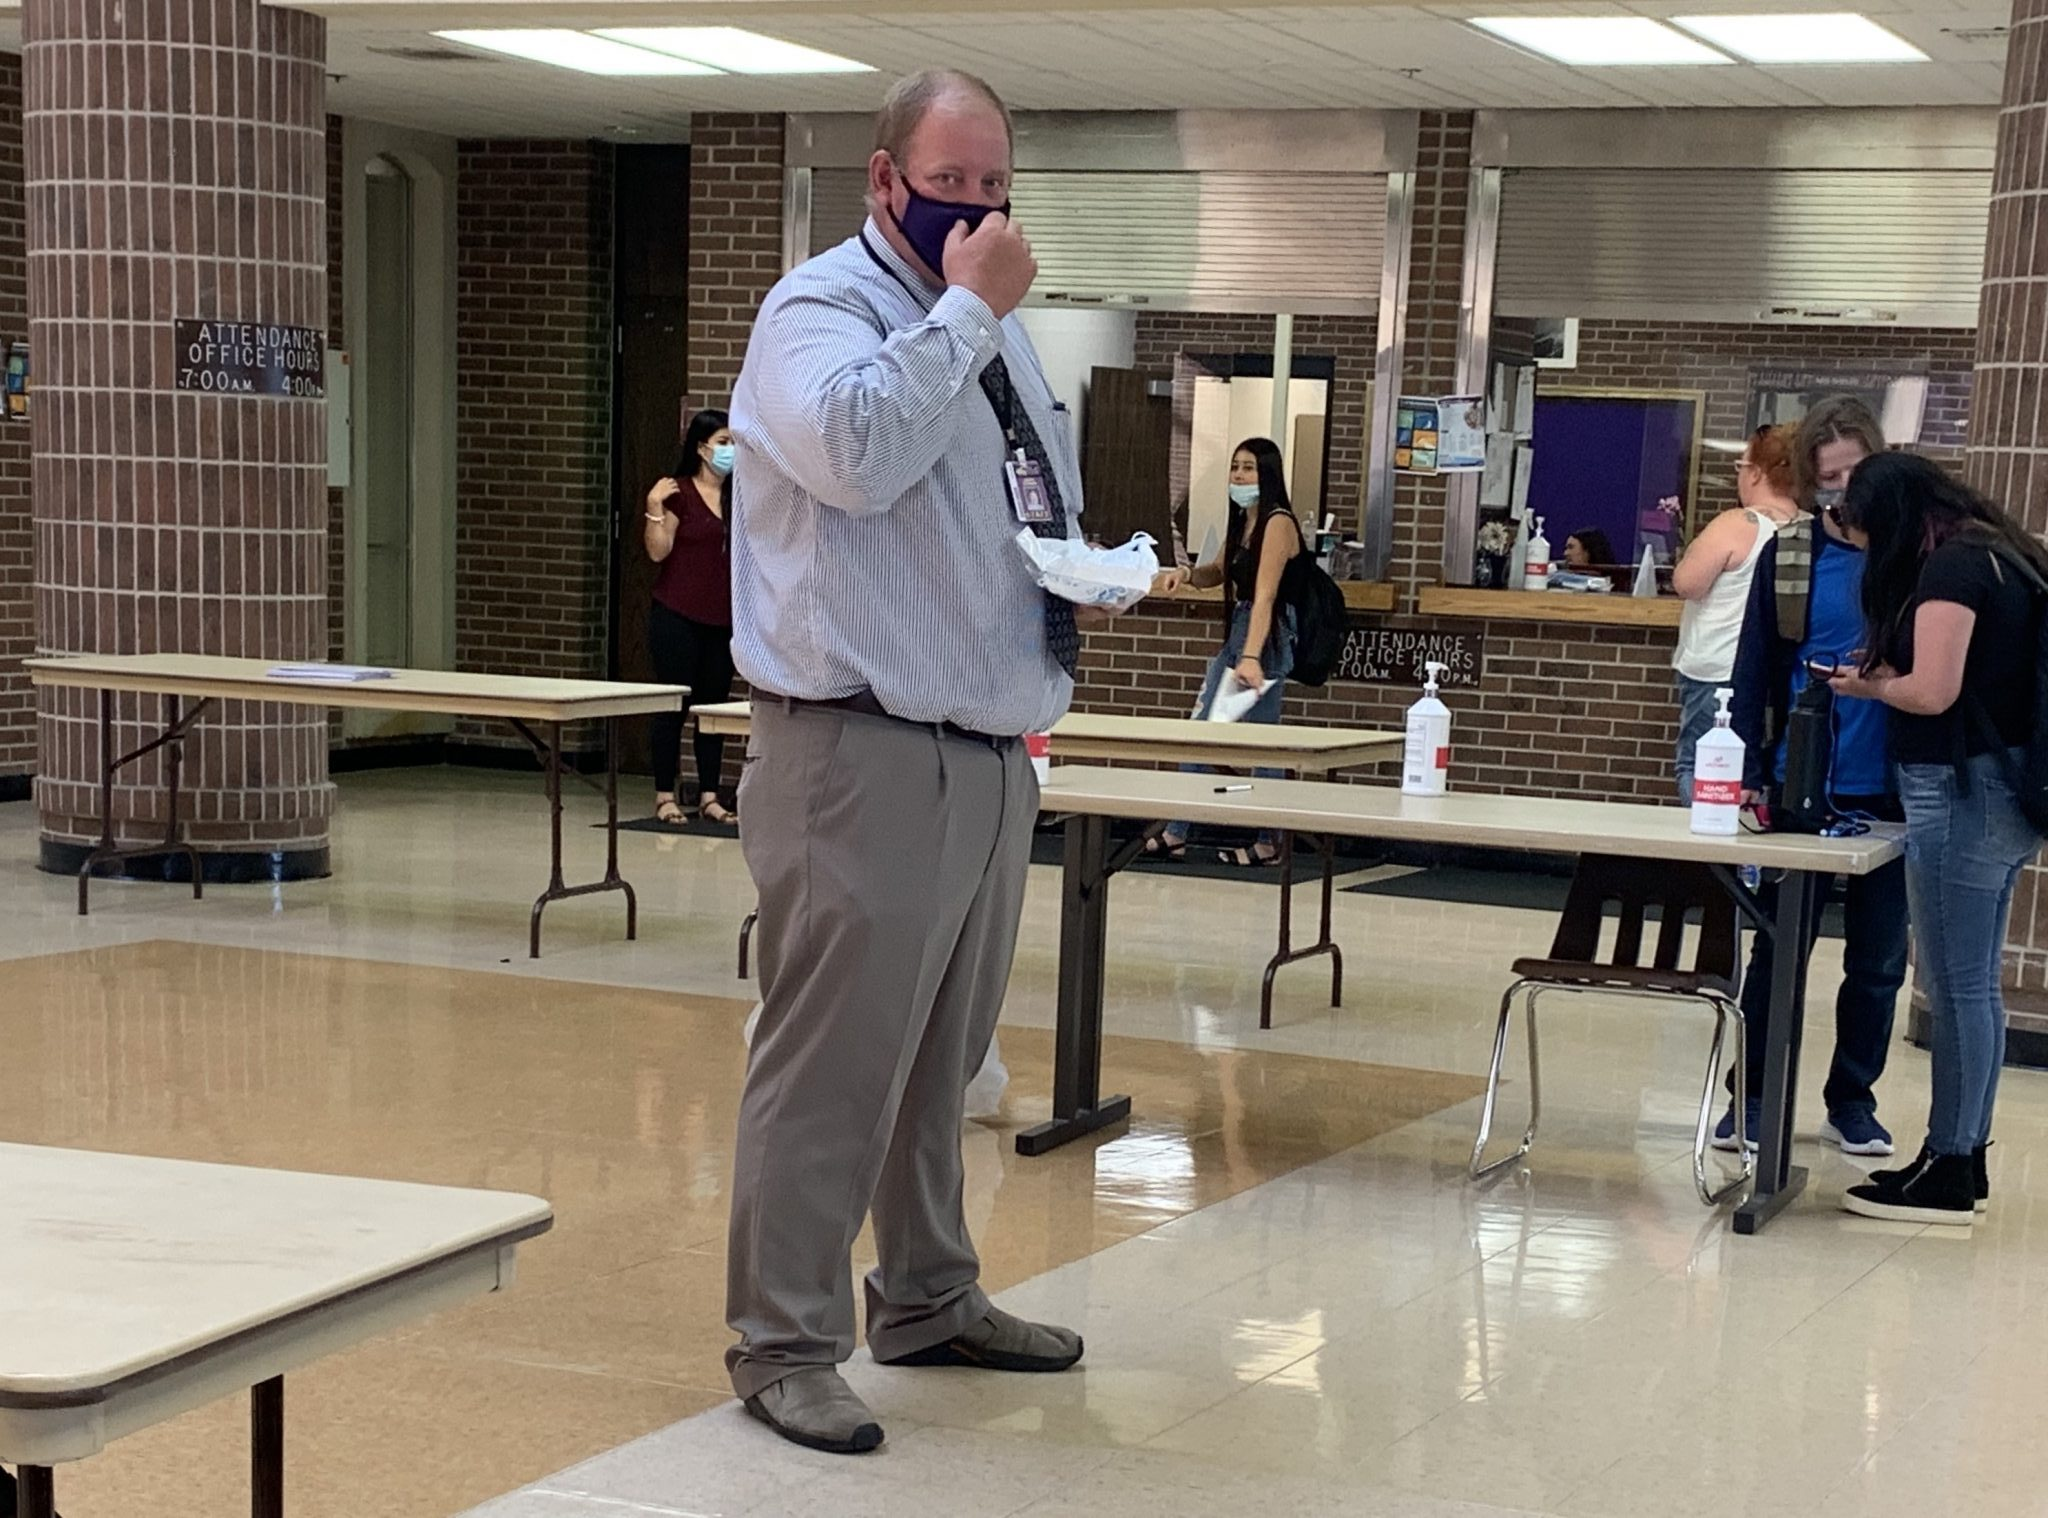 CCHS Principal Jason Garman waits for students to return from lunch, hoping they may need a mask.